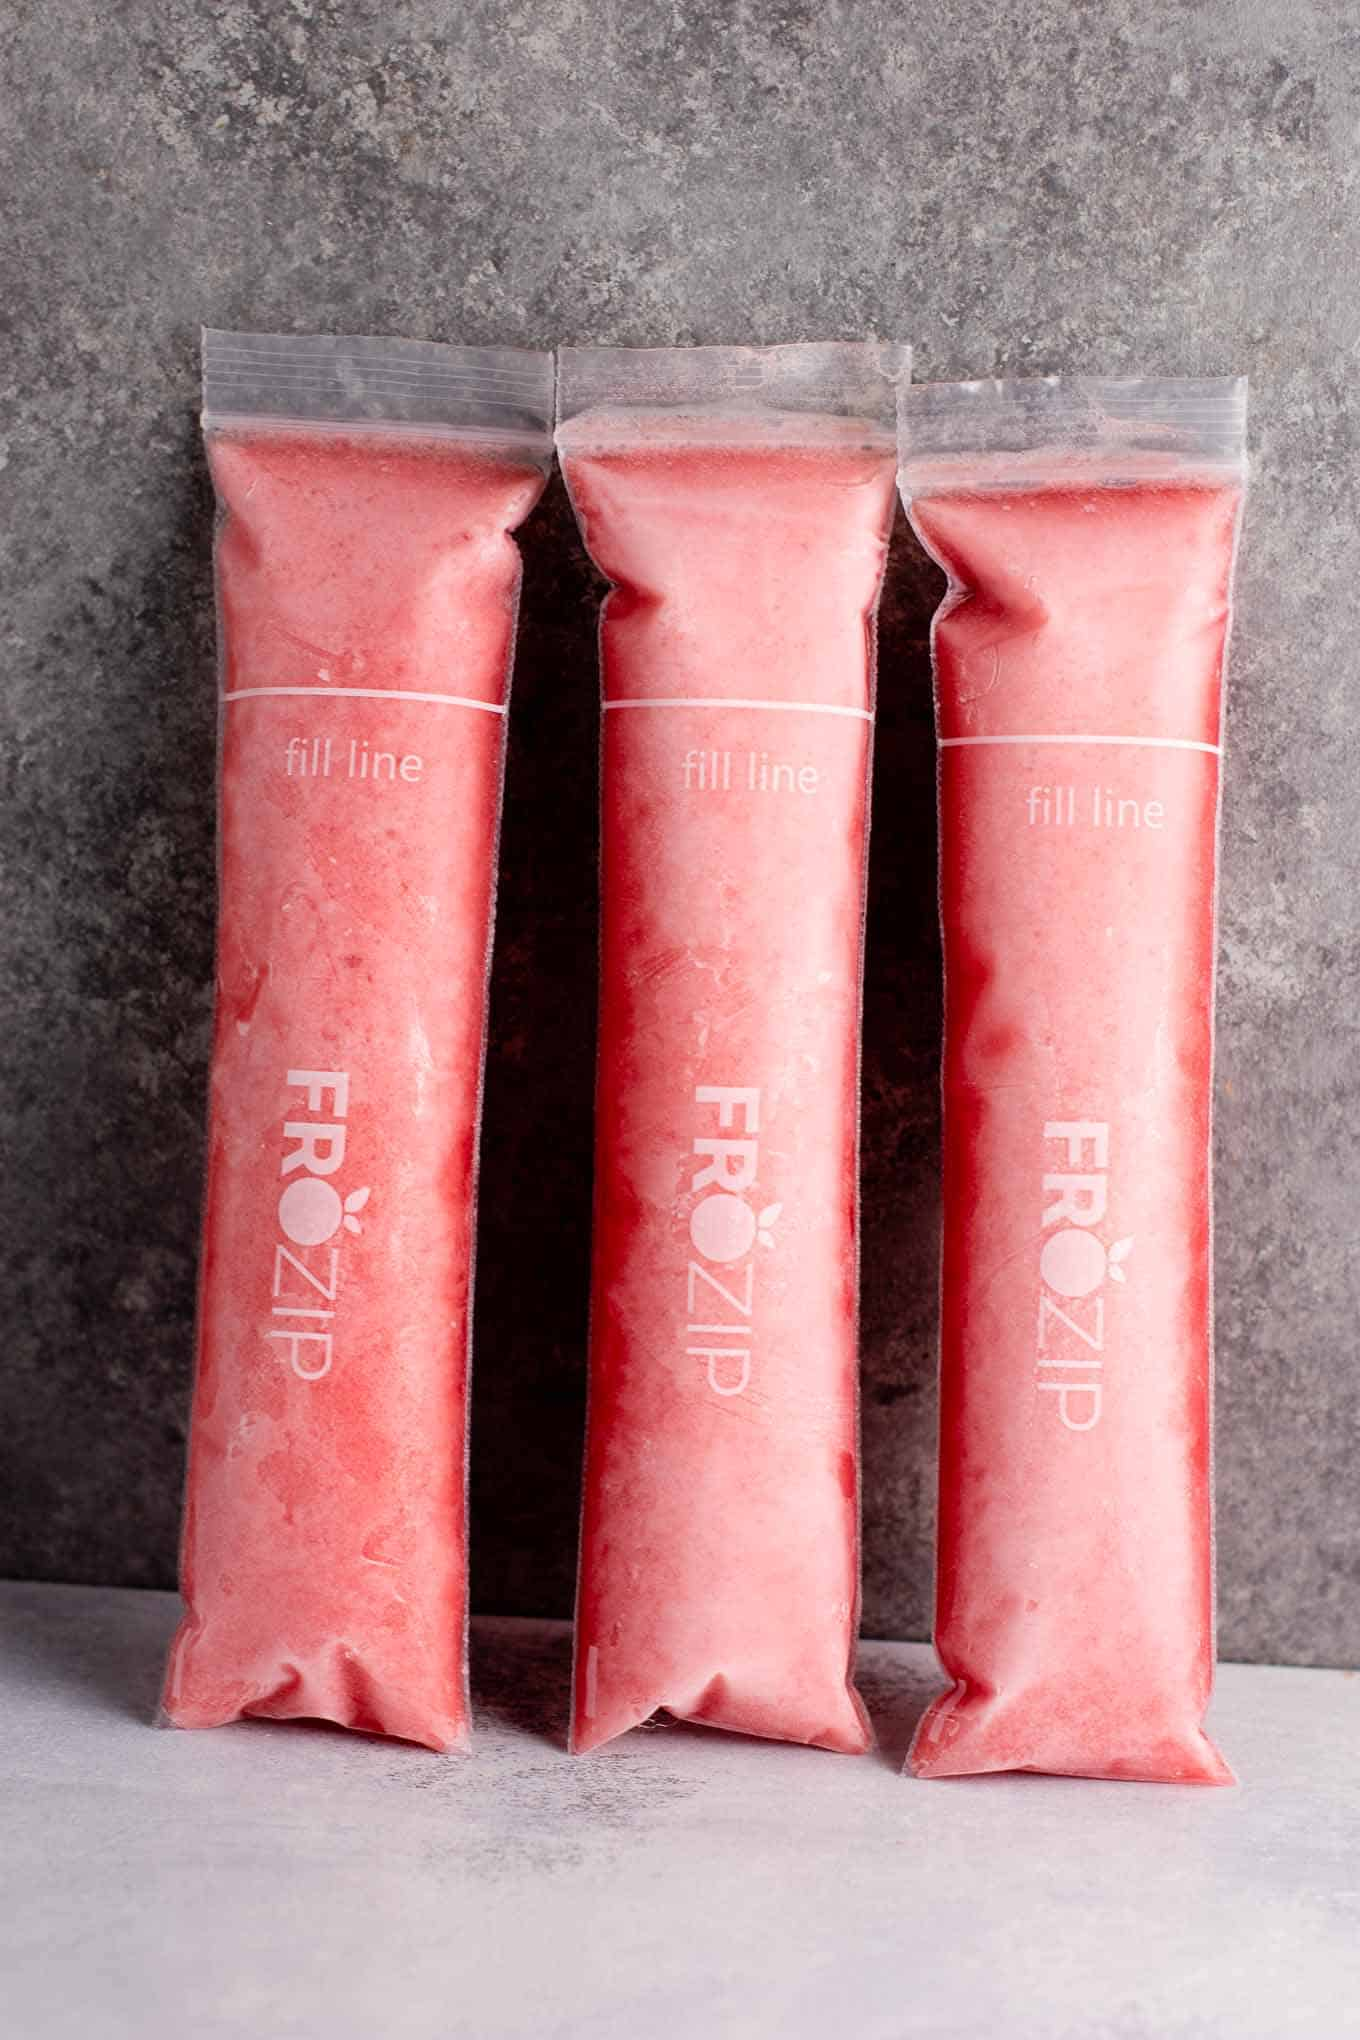 Strawberry pineapple freezer pops – learn how to make popsicles with just frozen fruit, coconut water and maple syrup! #freezerpops #healthy #icepops #popsicles #homemade #healthyrecipe #dessert #healthydessert #strawberrypineapple #summer